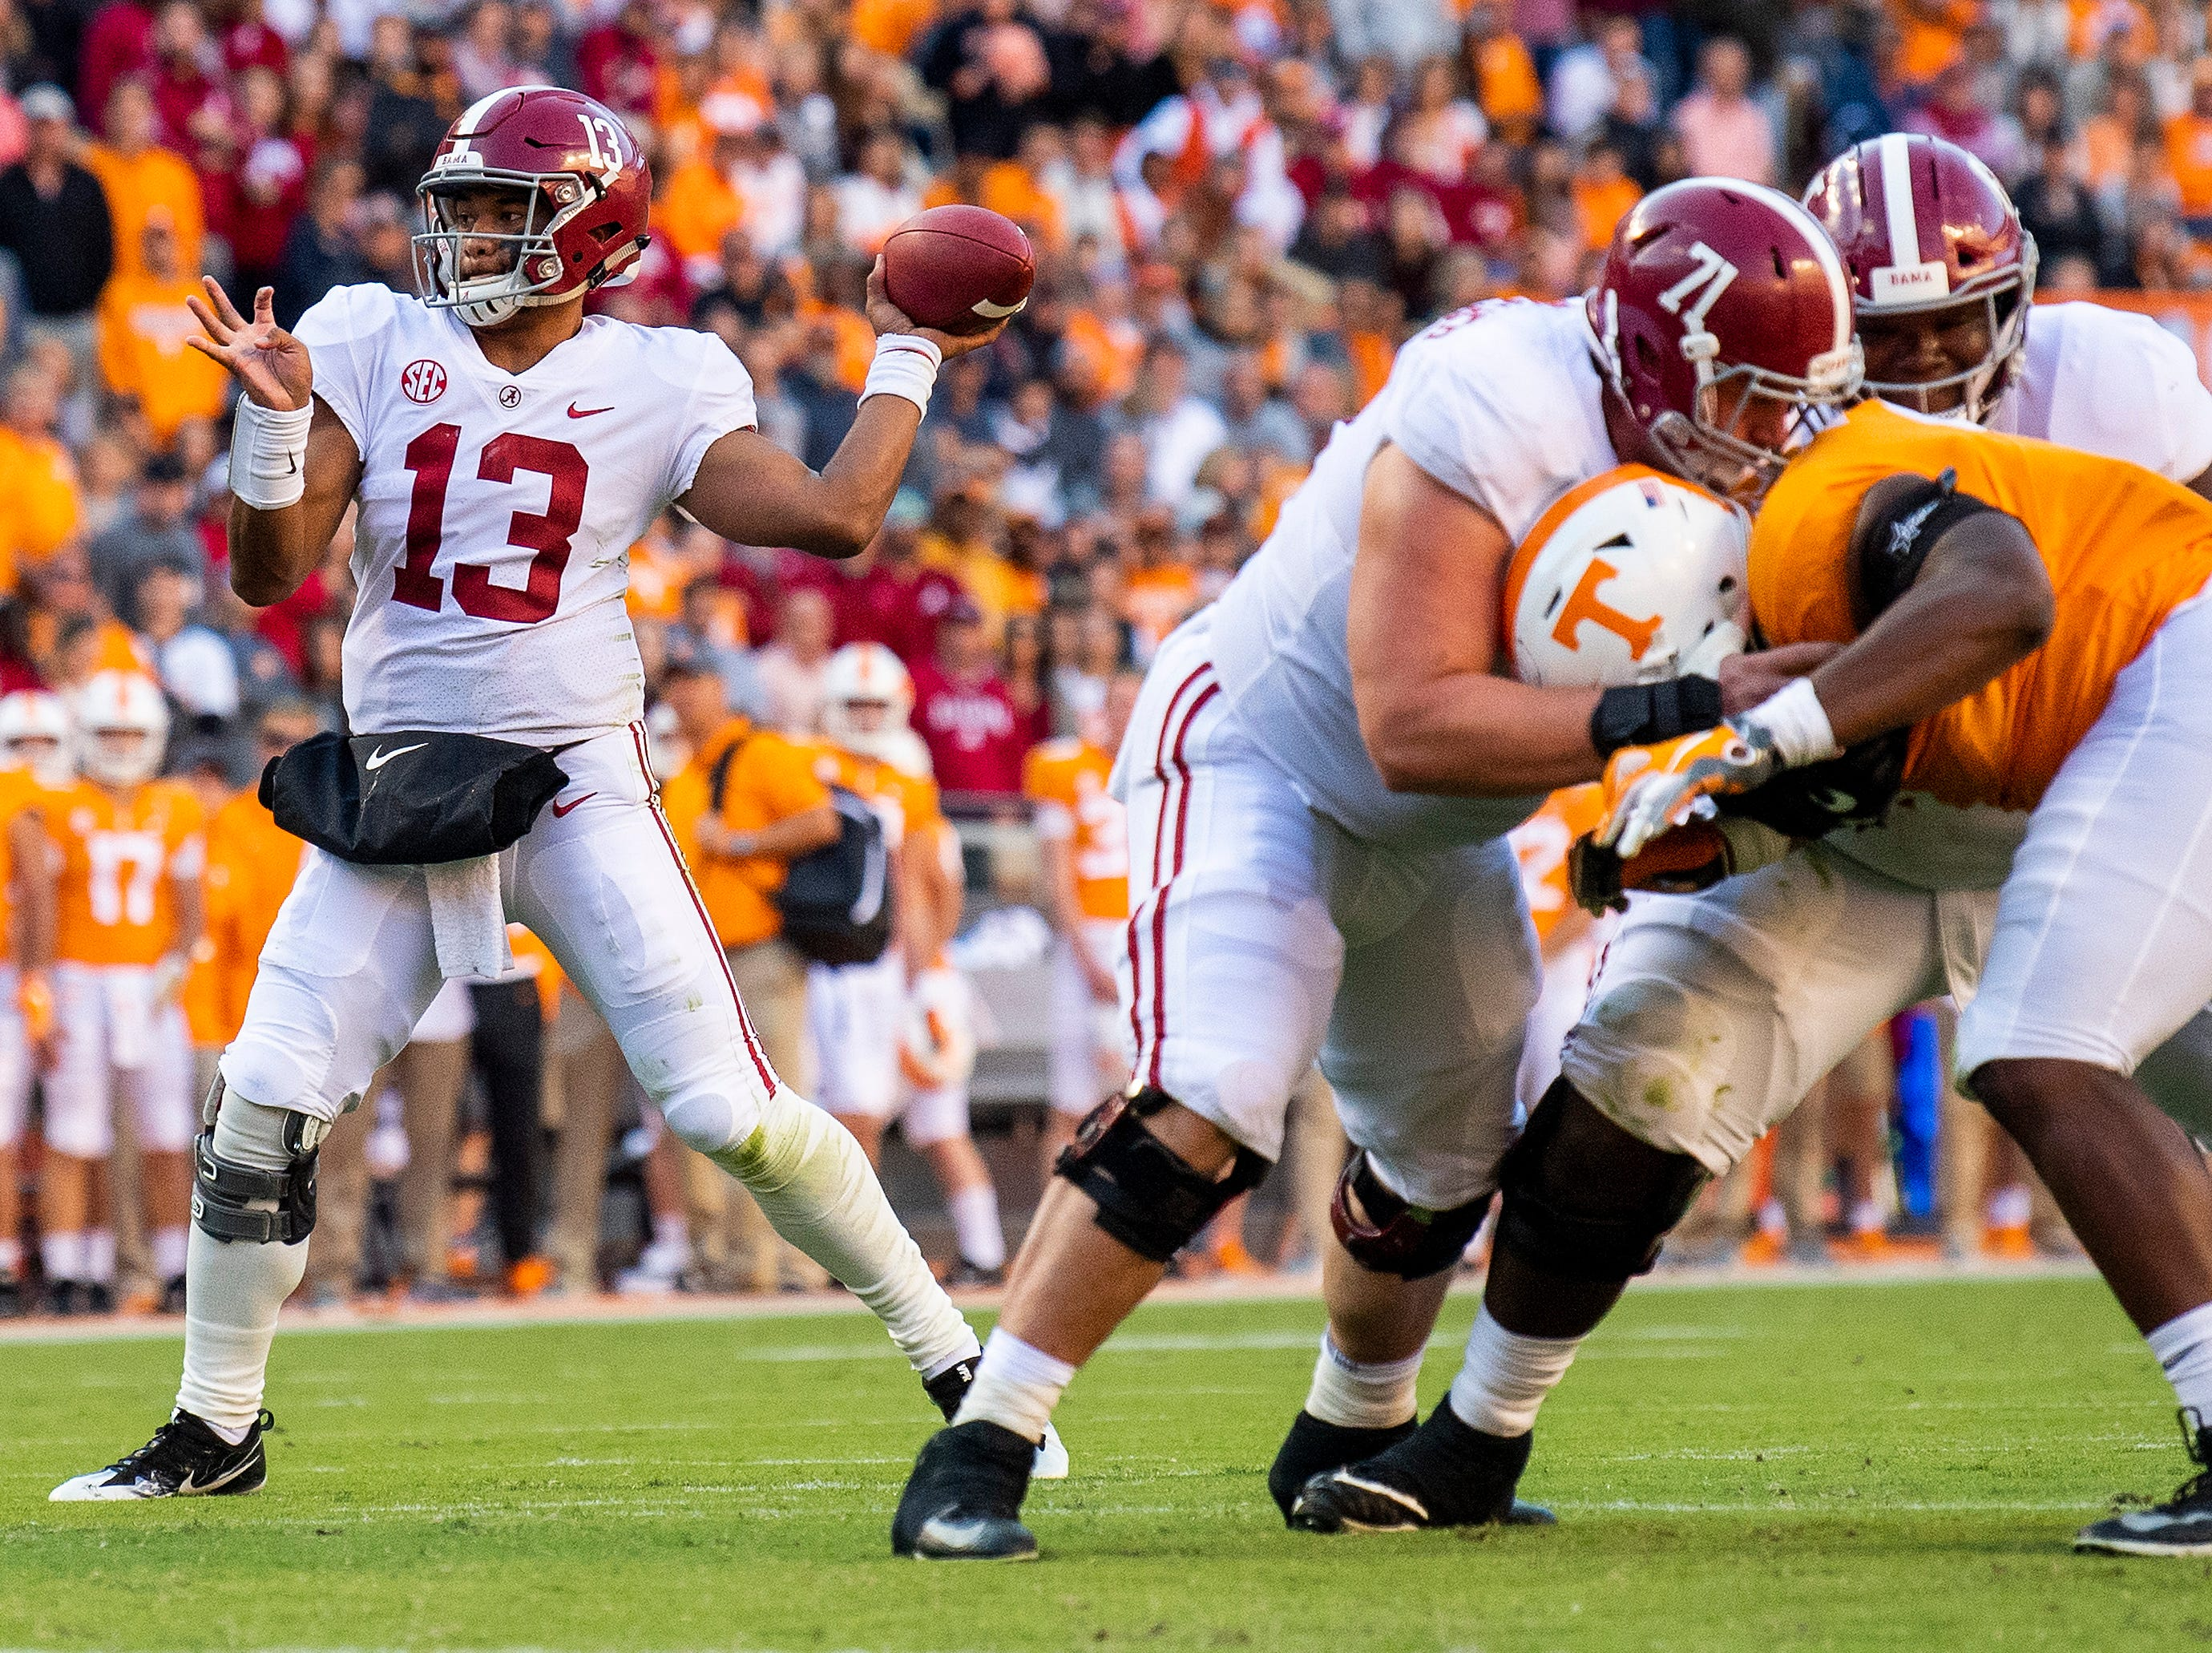 Alabama quarterback Tua Tagovailoa (13) throws against Tennessee in first half action at Neyland Stadium in Knoxville, Tn., on Saturday October 20, 2018.